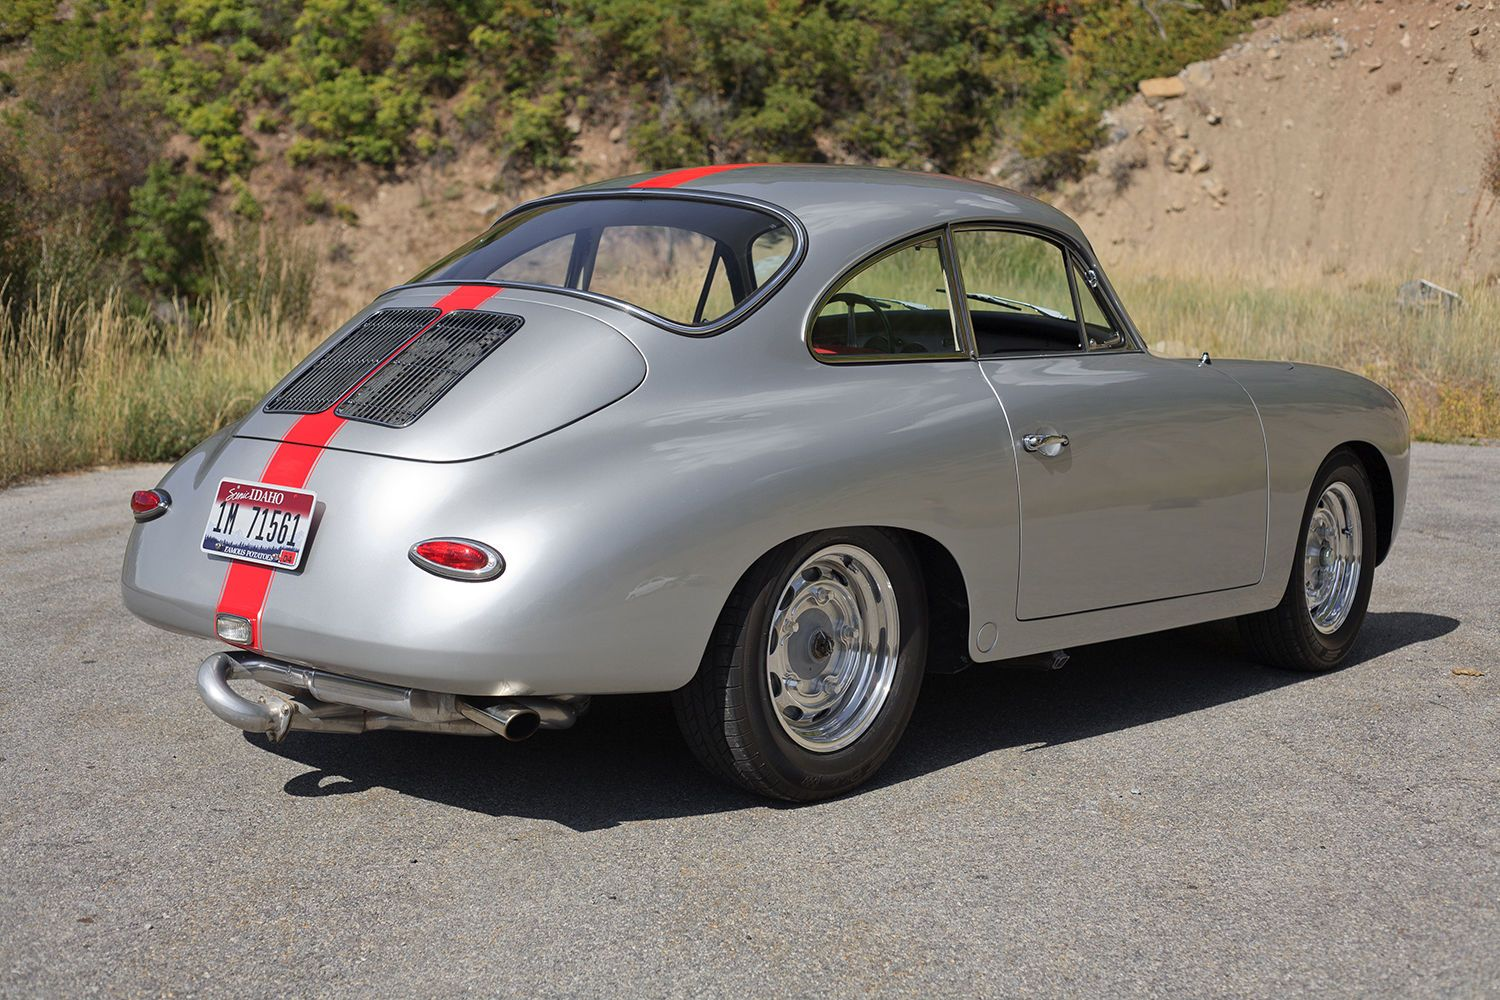 Pin by Timothy P Doyle on 50's Porsche 356 | Pinterest | Porsche 356